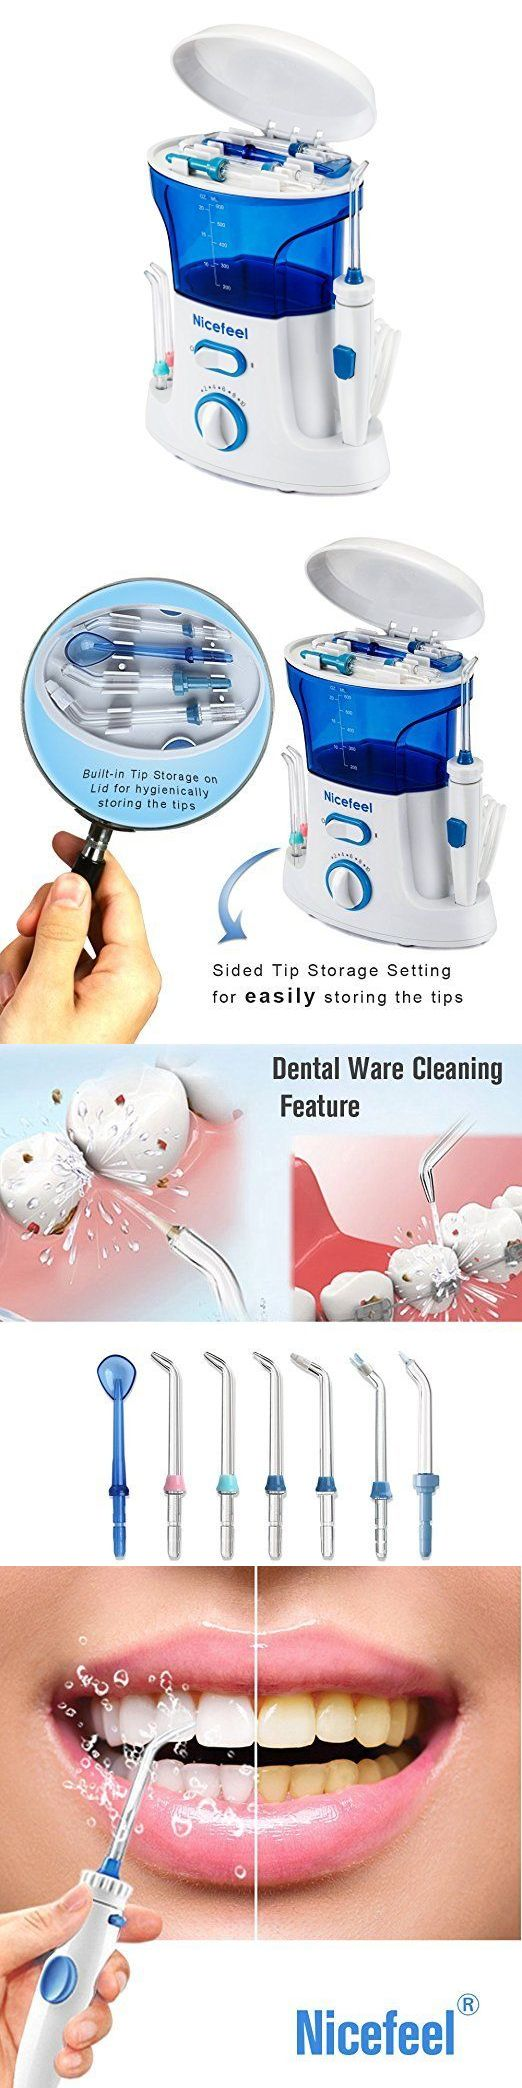 Dental Floss and Flossers: Dental Water Jet Flosser Electric Toothbrush Oral Care Pick Irrigator Pressure BUY IT NOW ONLY: $40.01